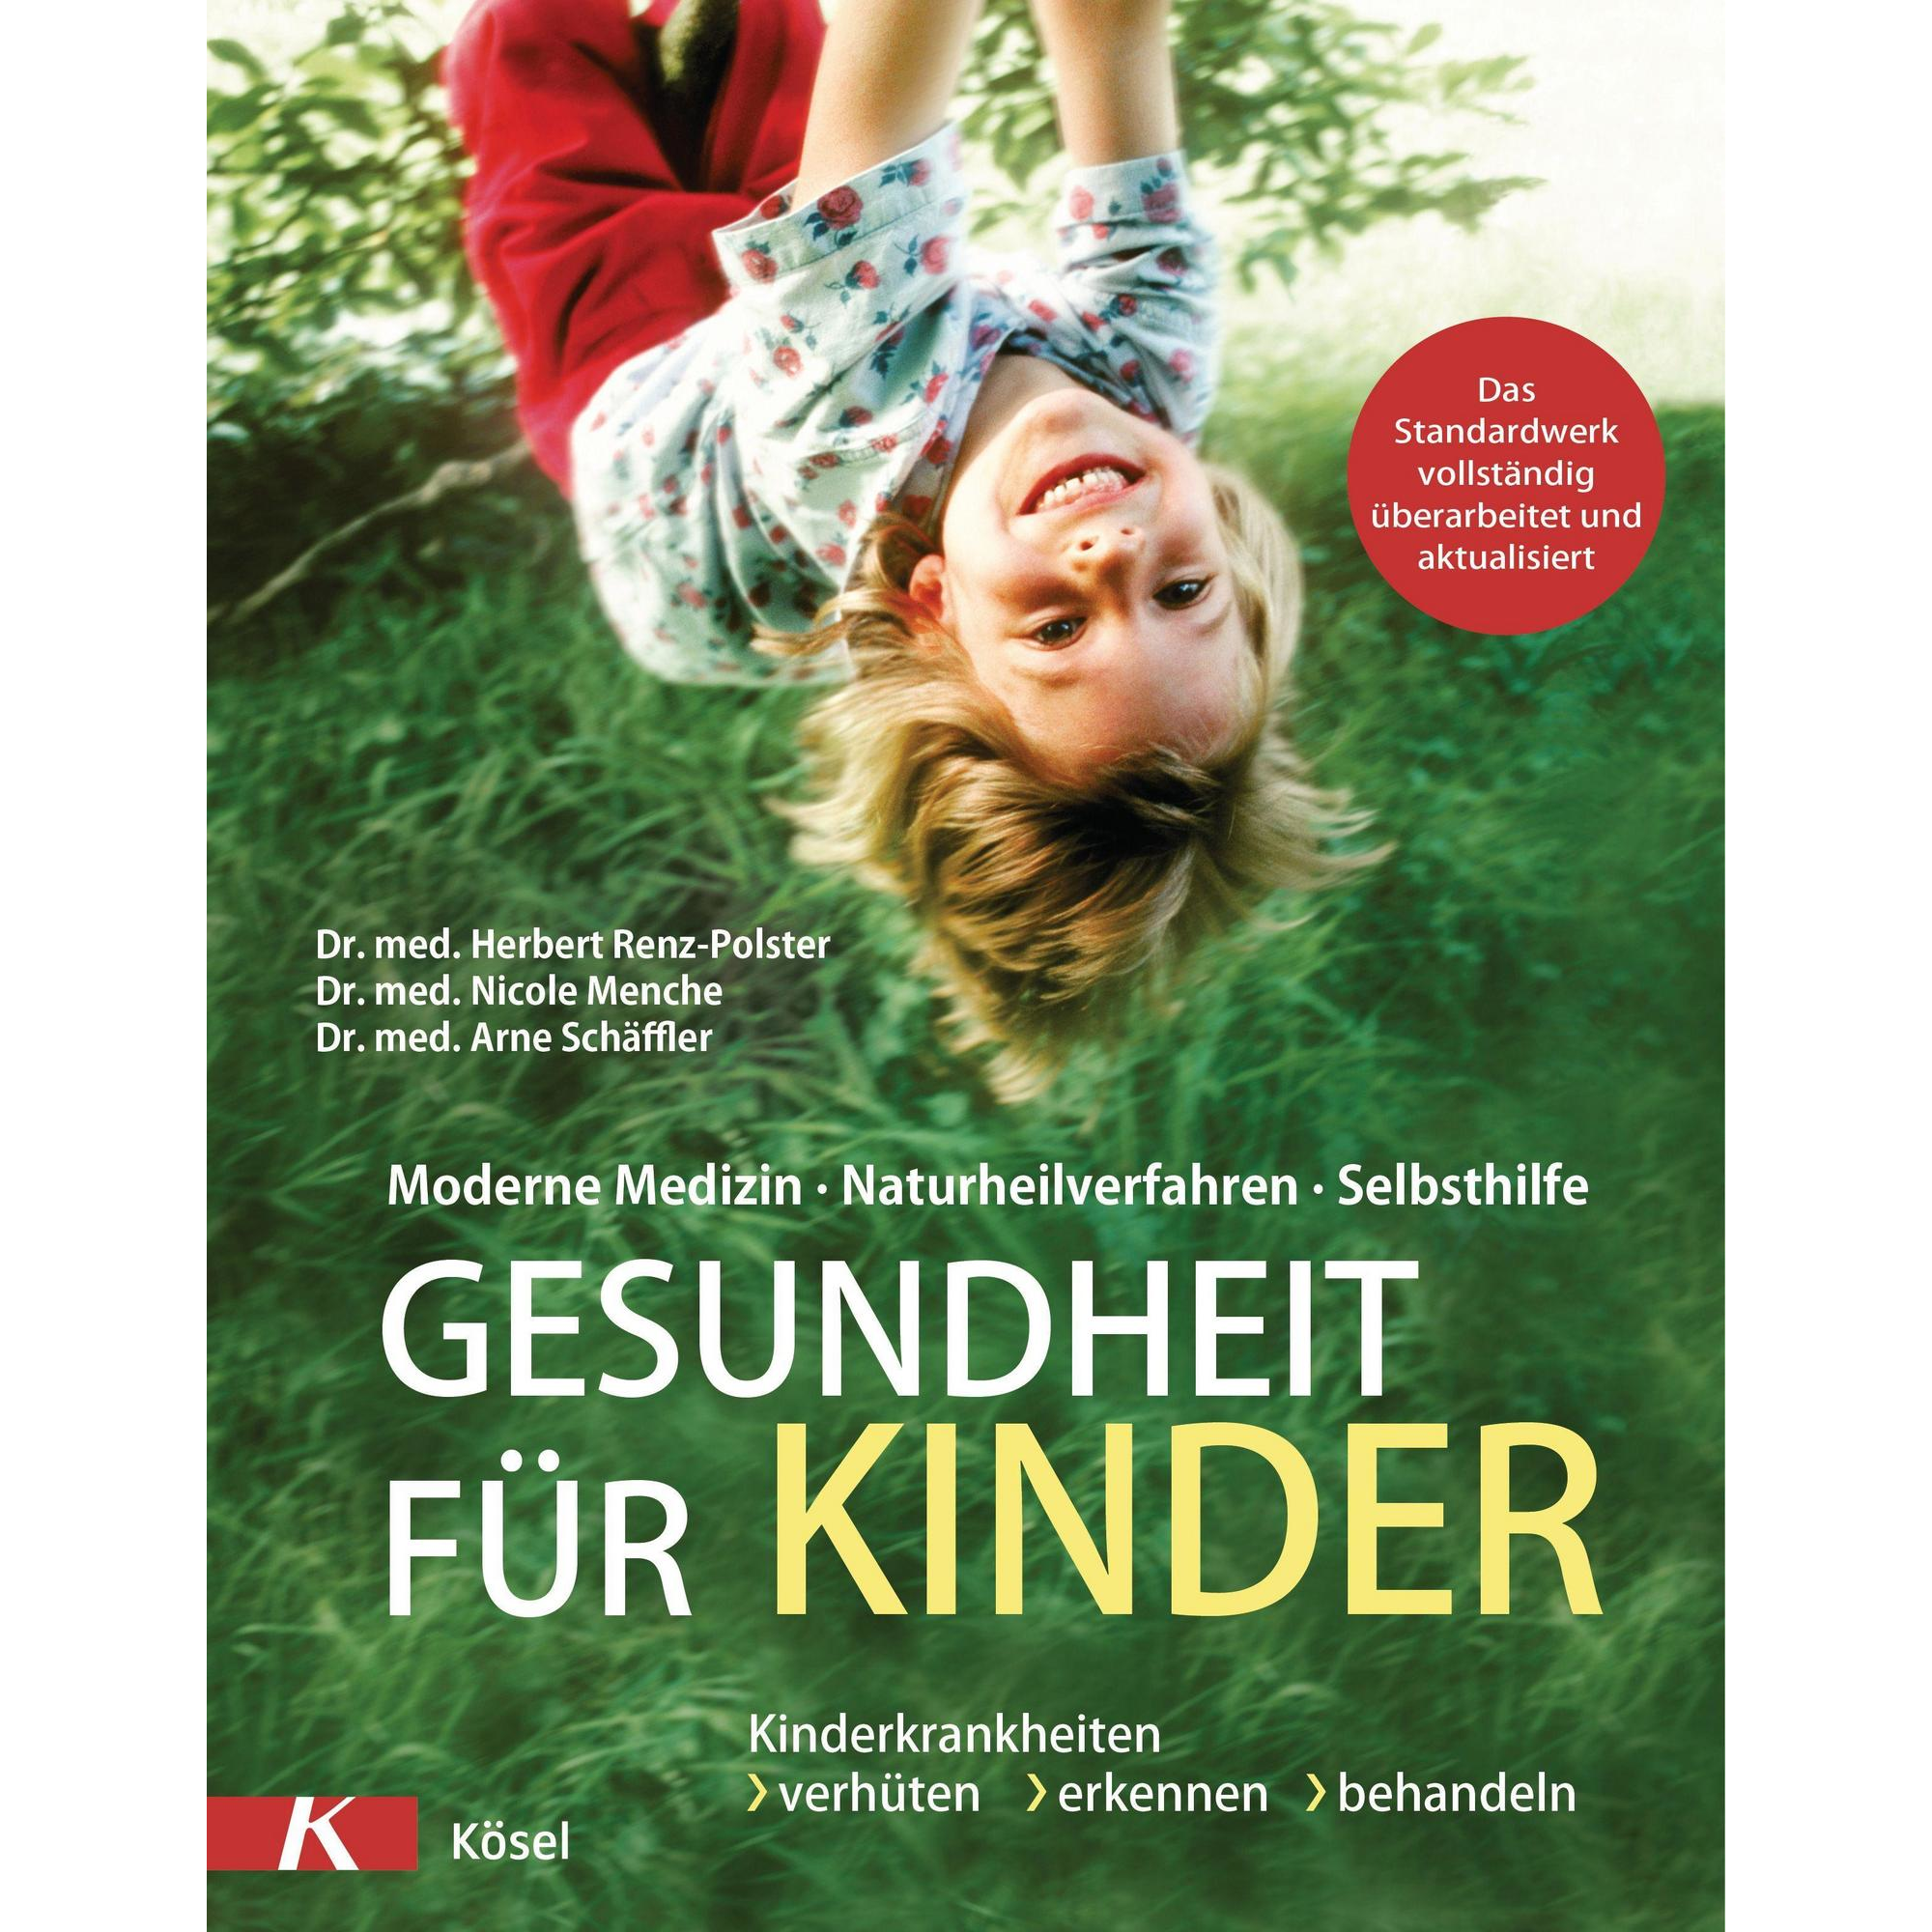 gesundheit-fuer-kinder-cover-square